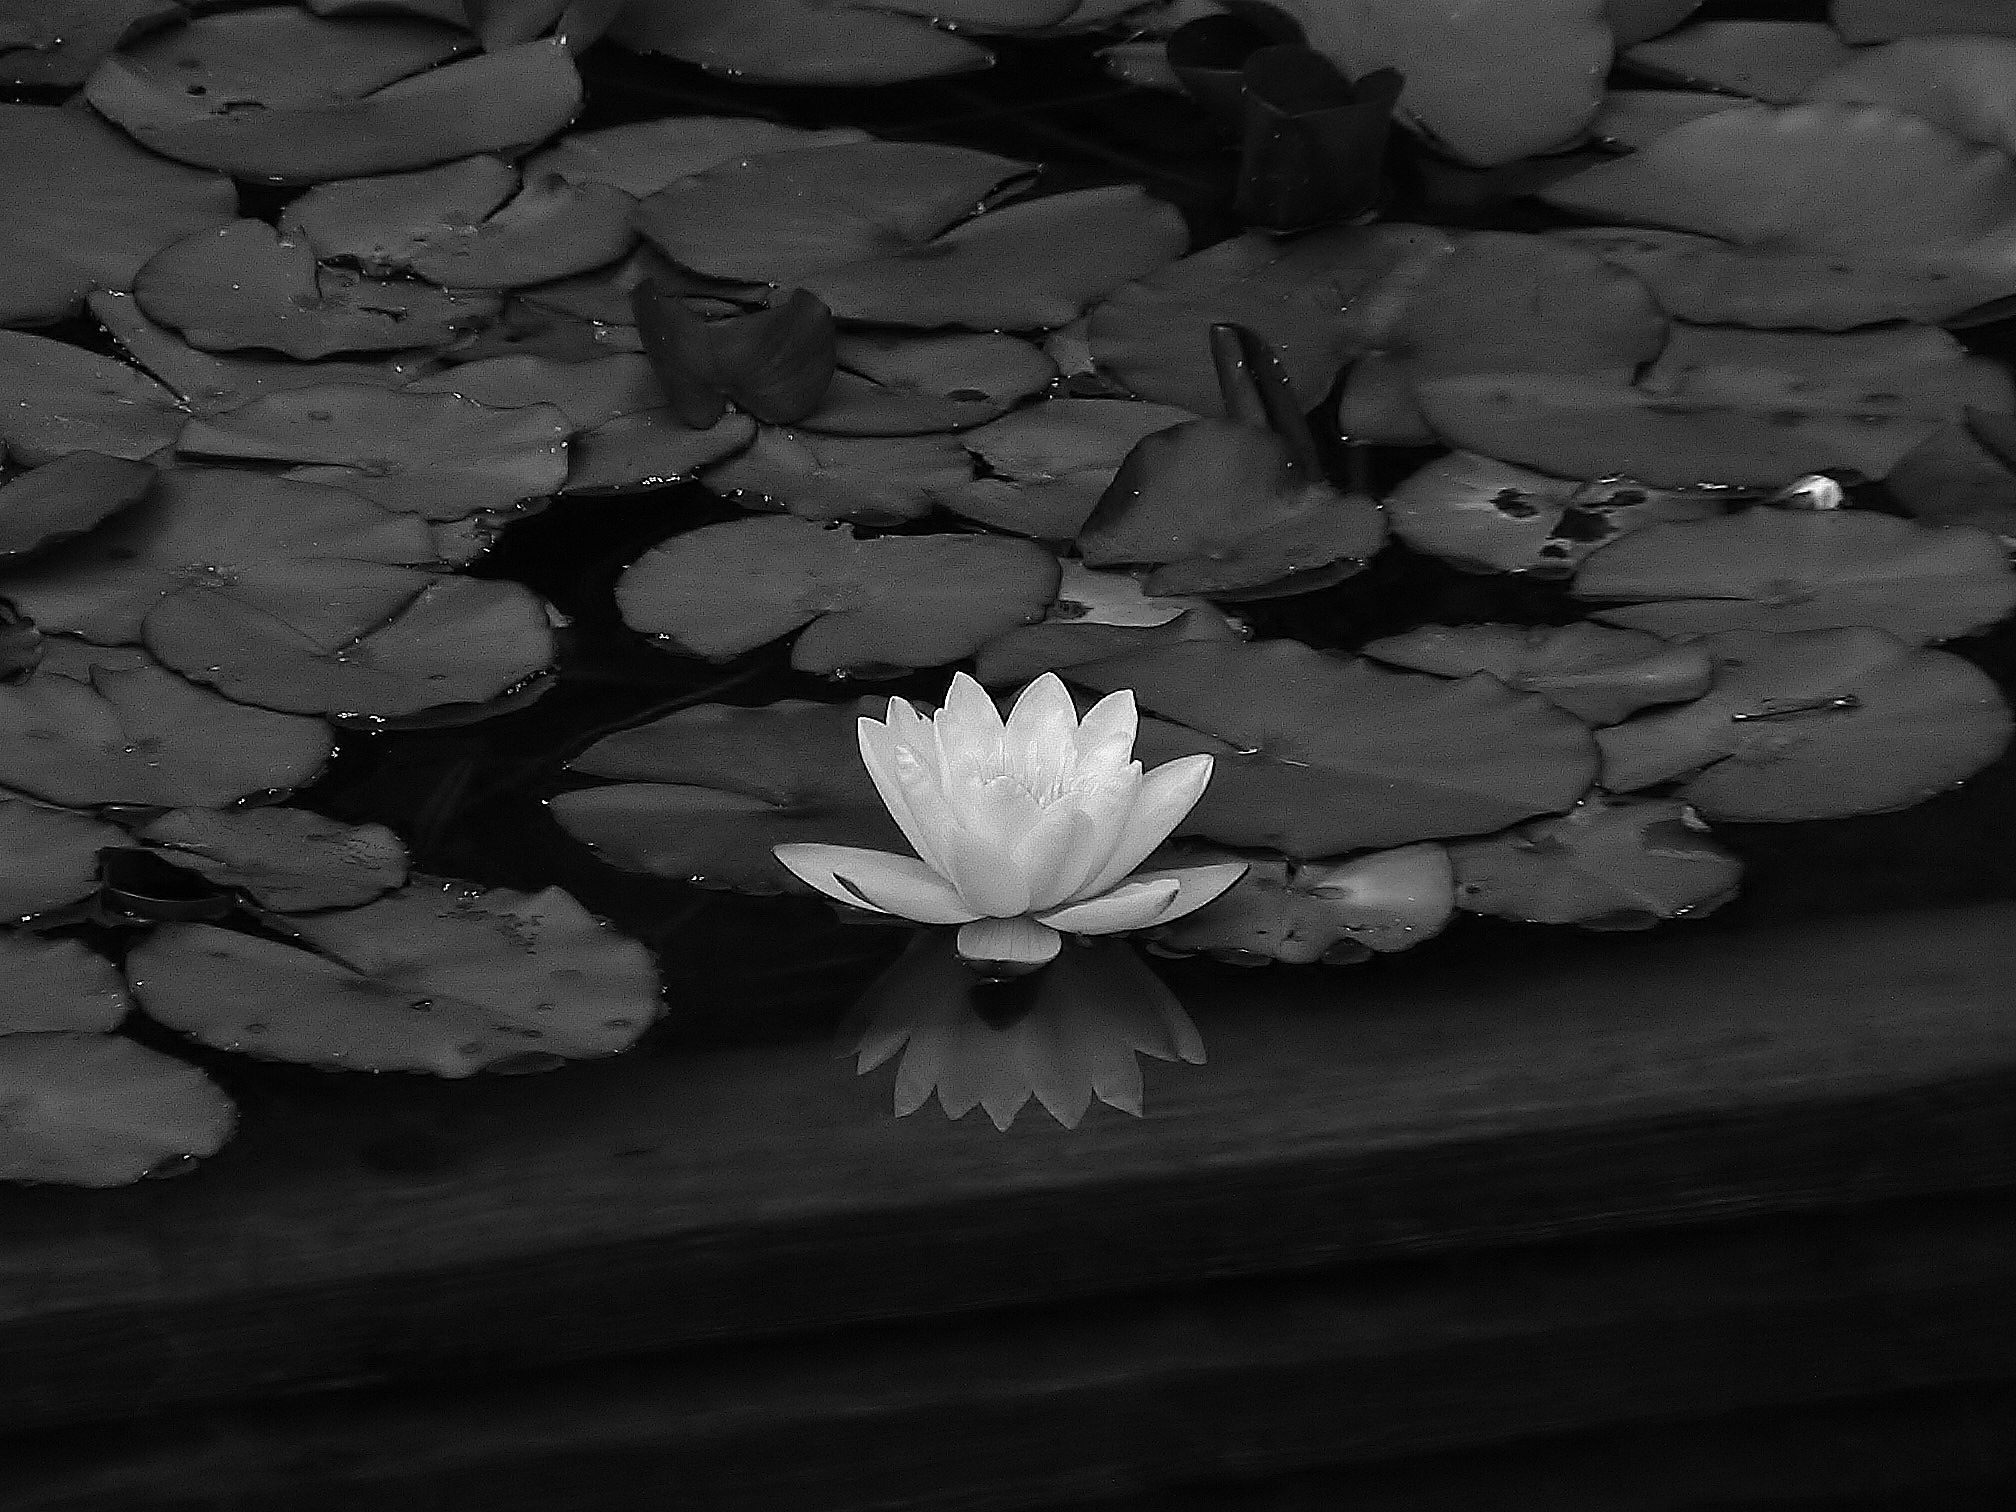 Black Lotus Flower Background Free Download Black And White Flowers